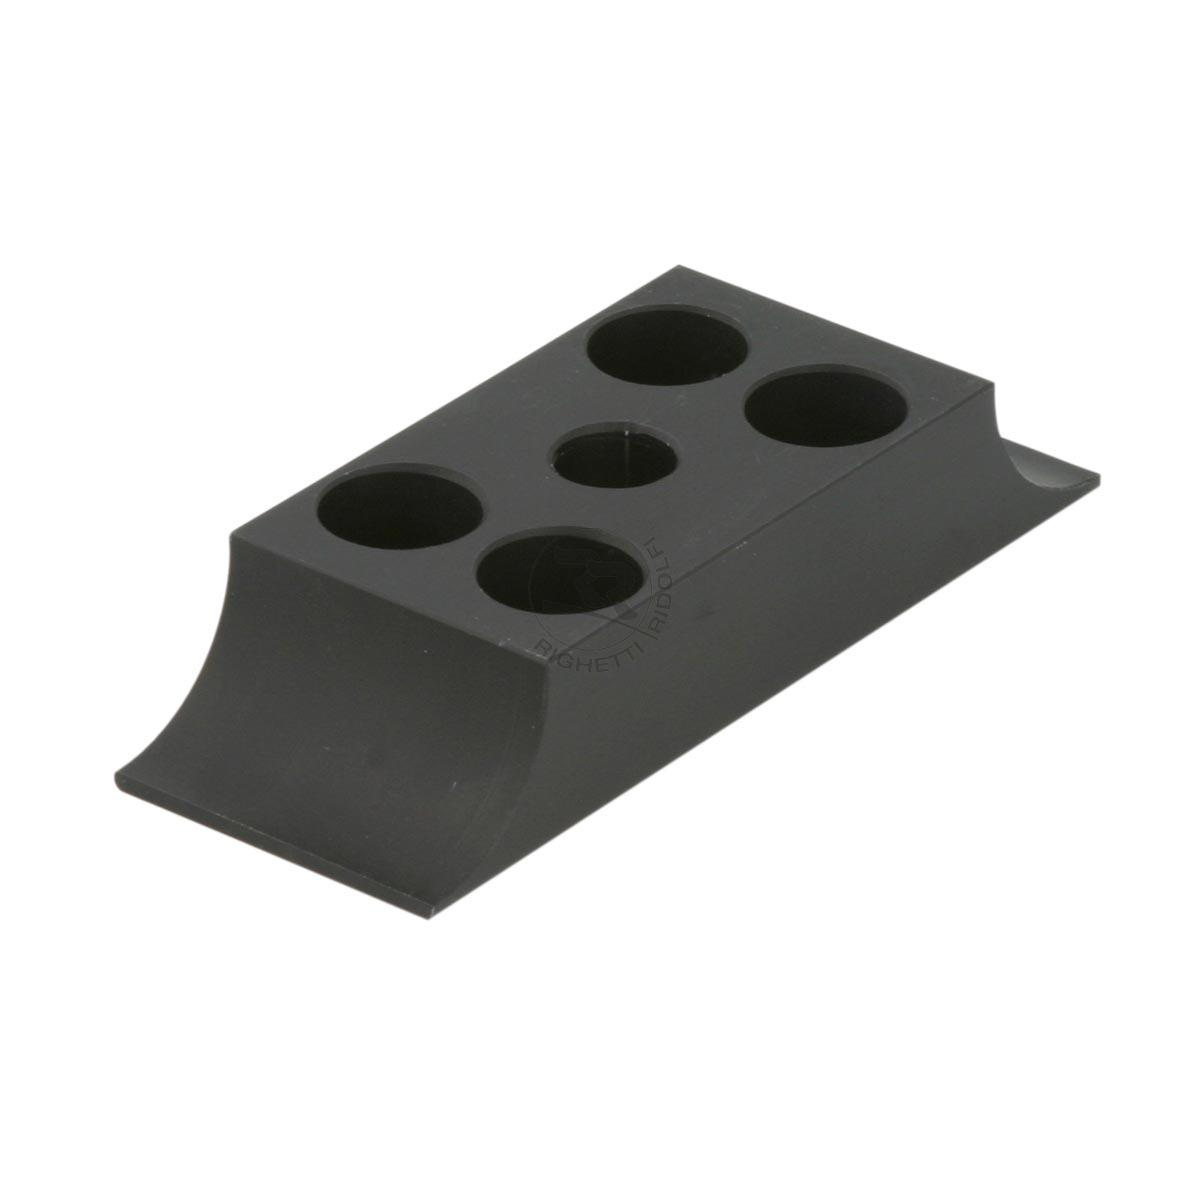 ALUMINIUM LOWER BRACKET 30X92mm, BLACK ANODIZED